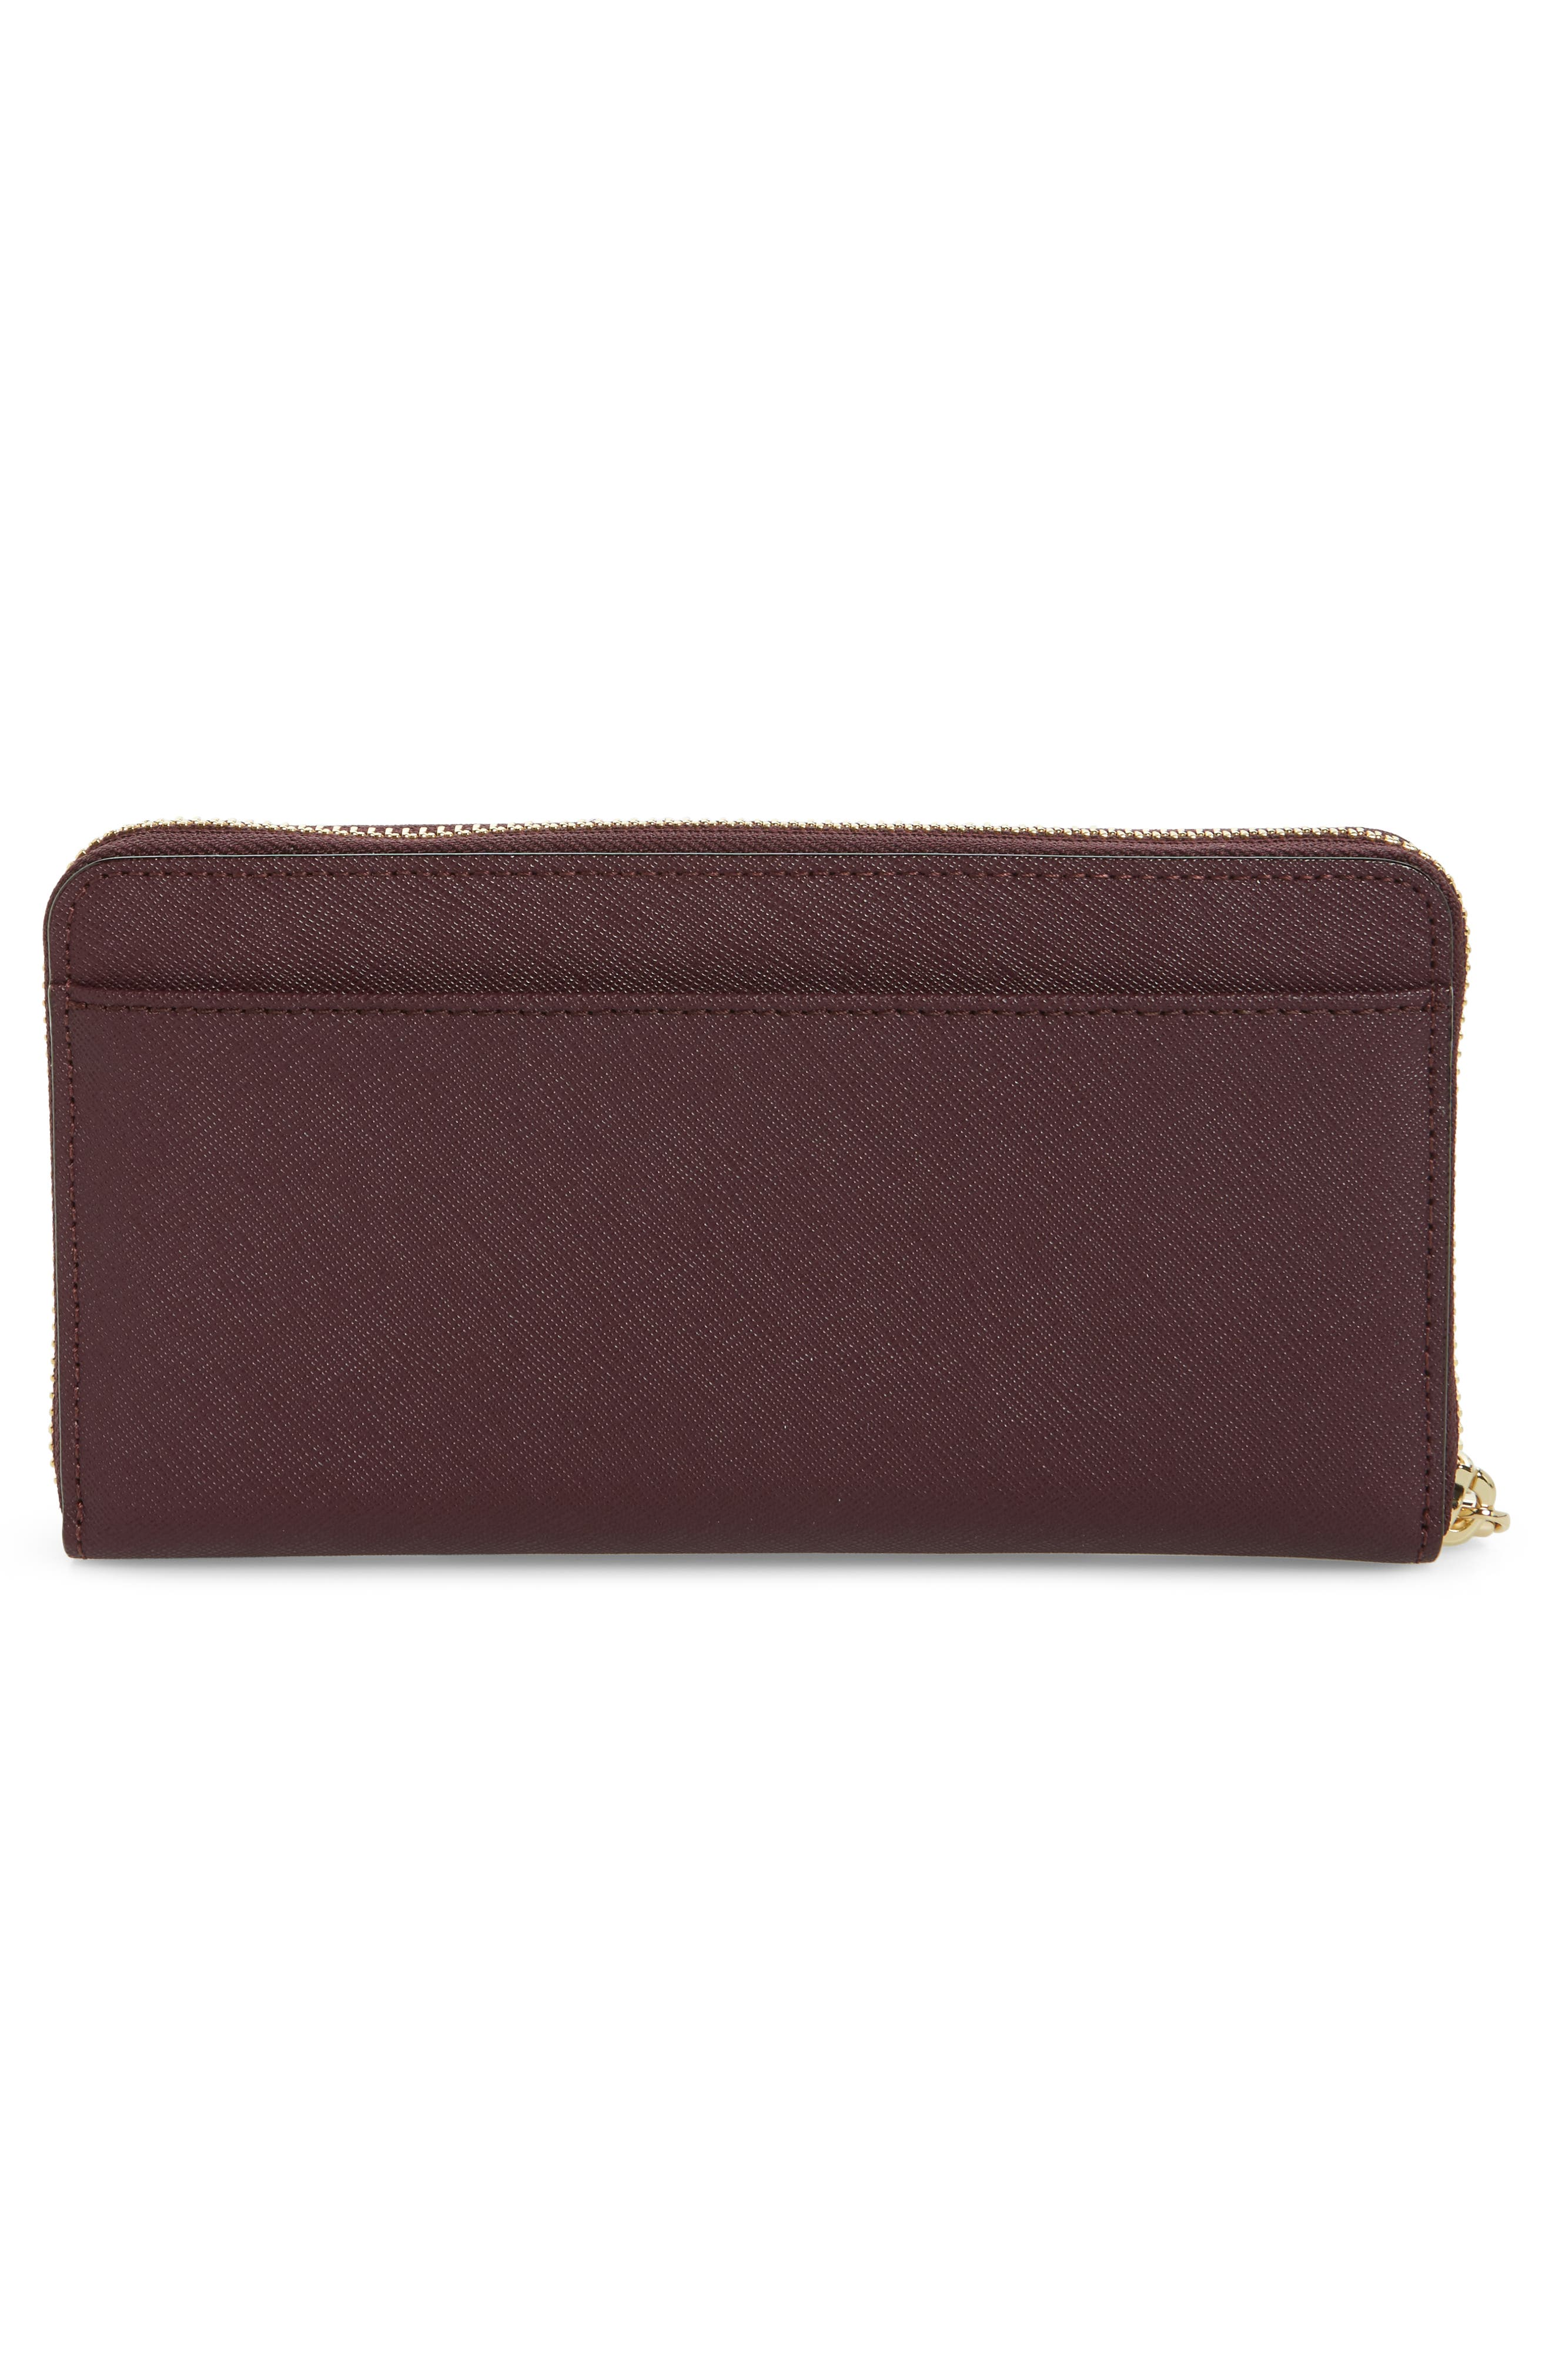 'cameron street - lacey' leather wallet,                             Alternate thumbnail 43, color,